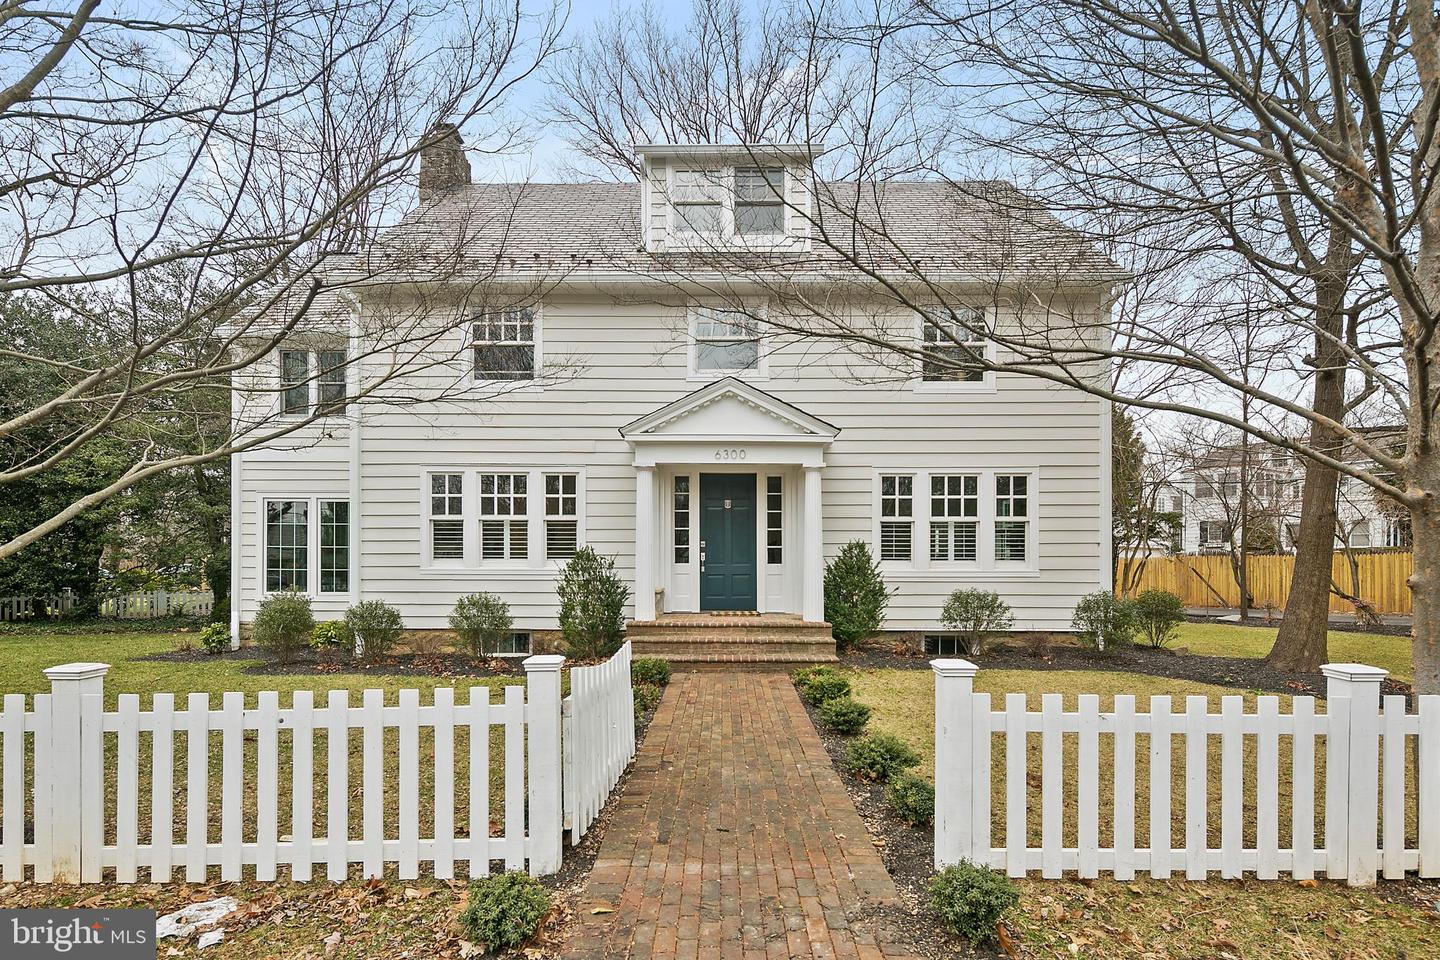 6300 BROOKVILLE ROAD, CHEVY CHASE, Maryland